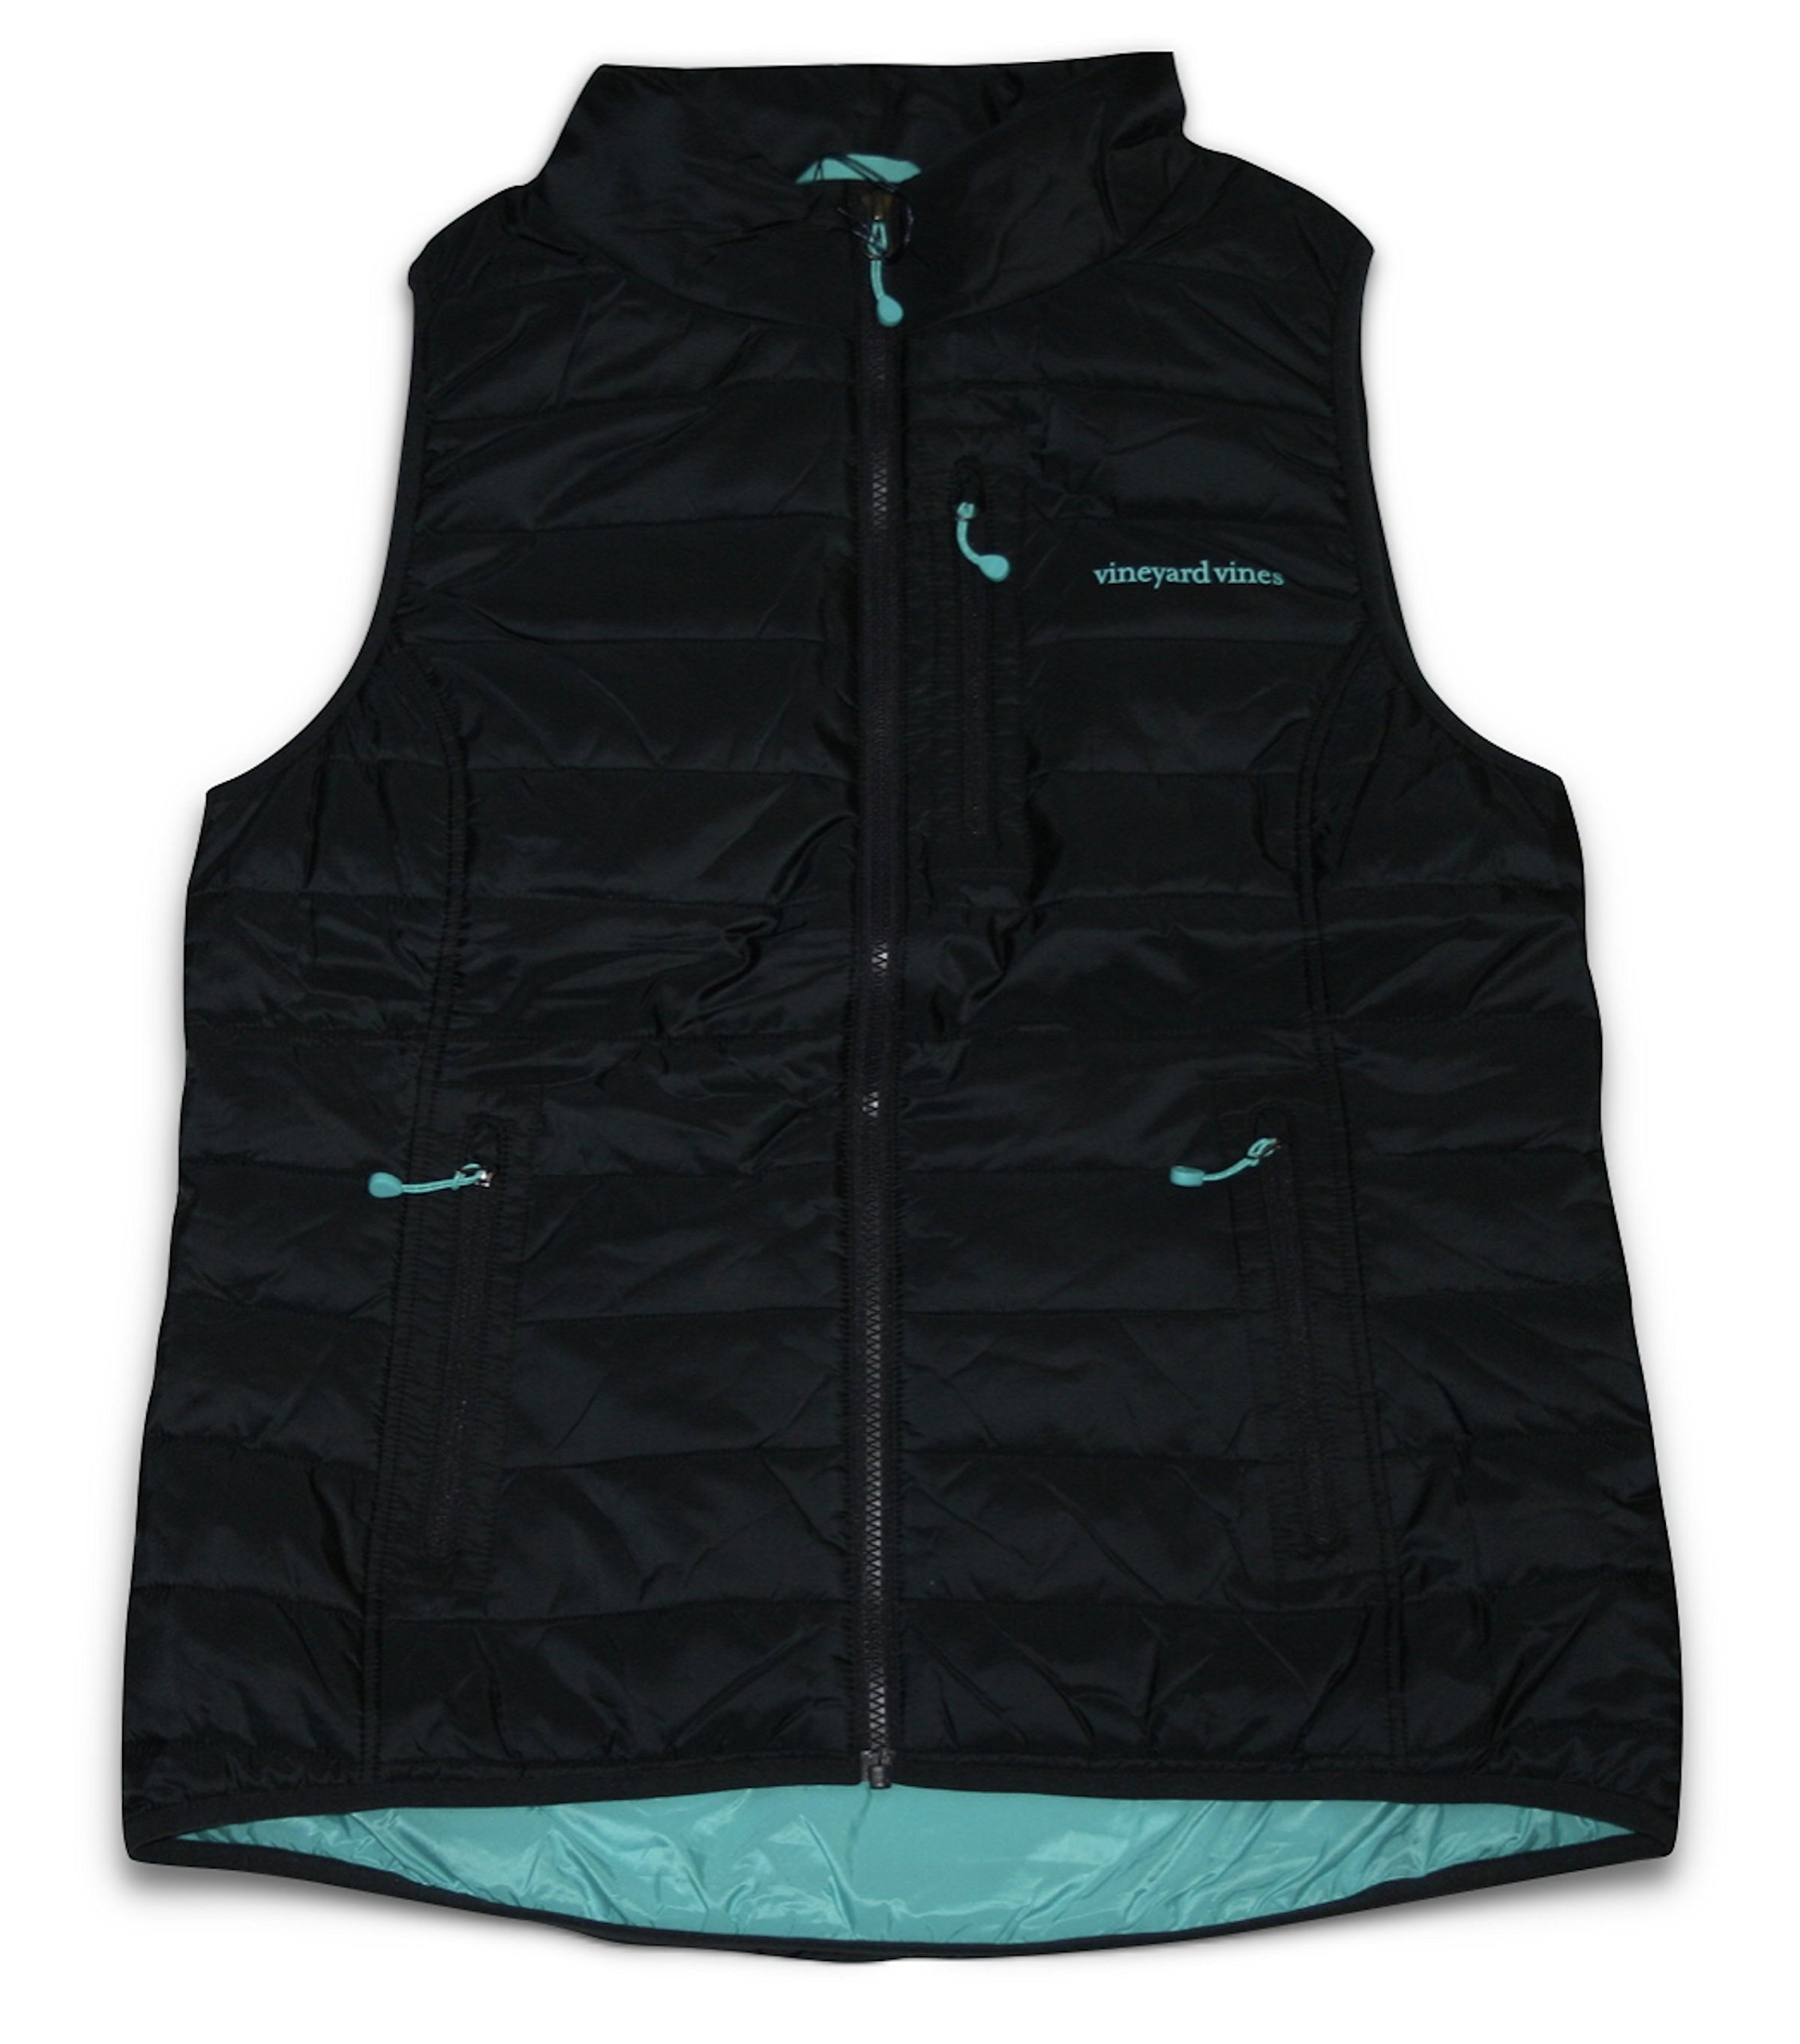 Vineyard Vines Women's Mountain Weekend Vest (Large) Jet Black